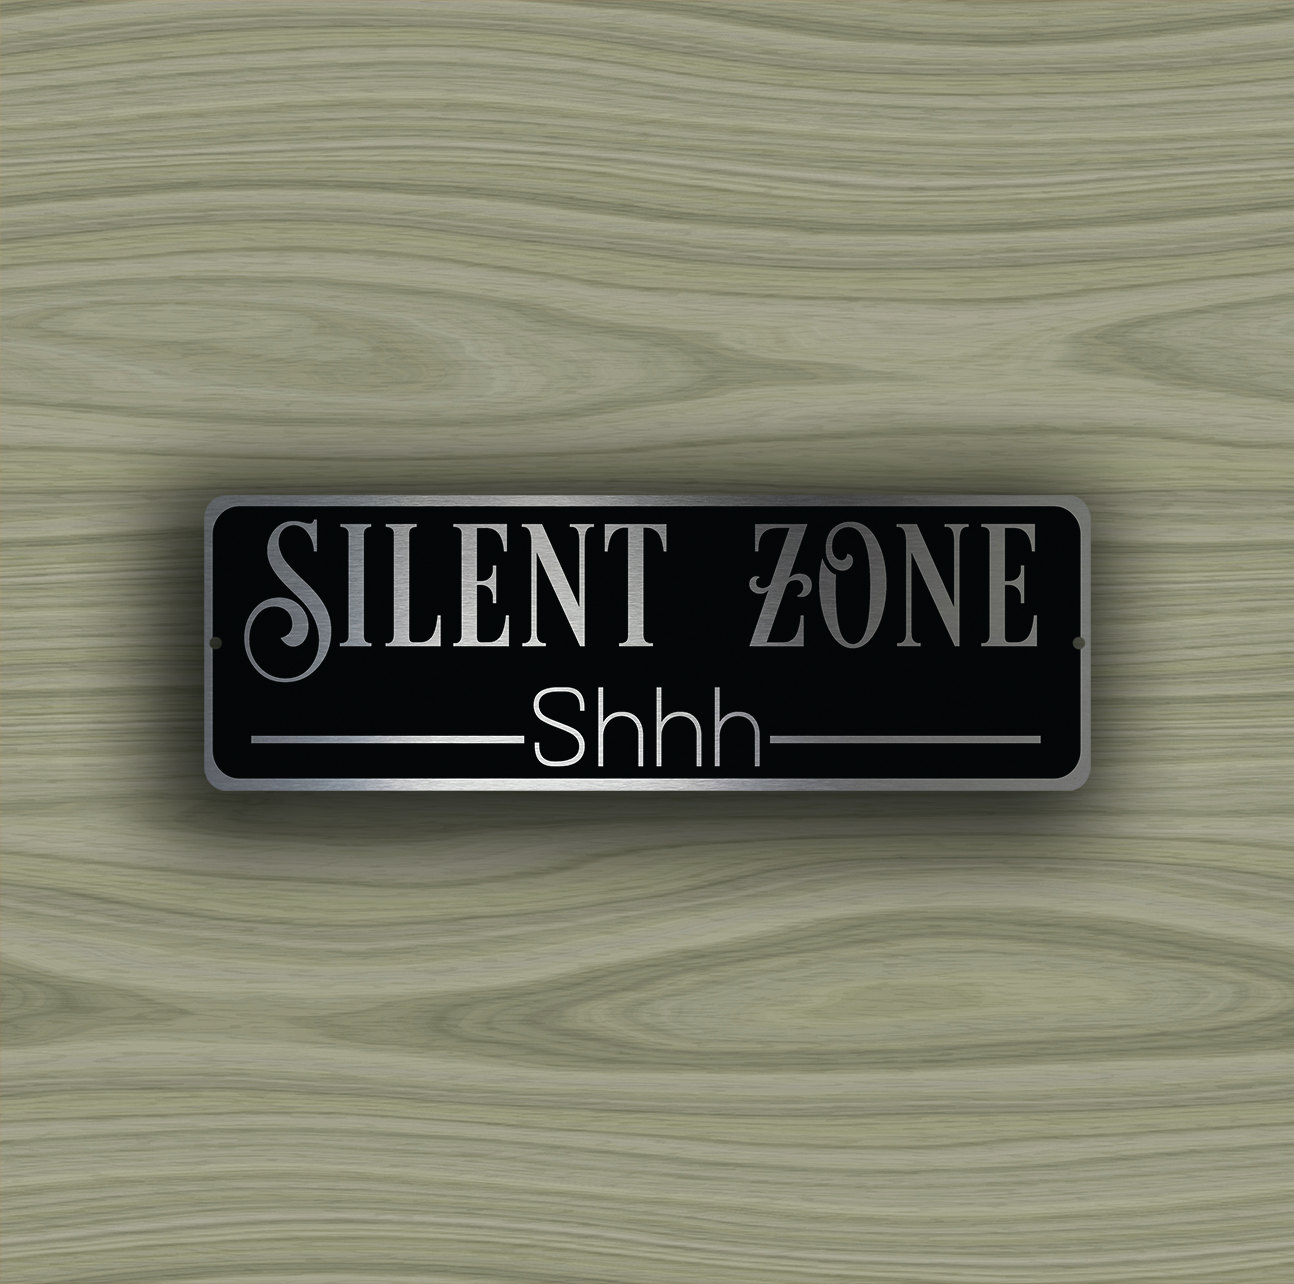 SILENT ZONE SIGN